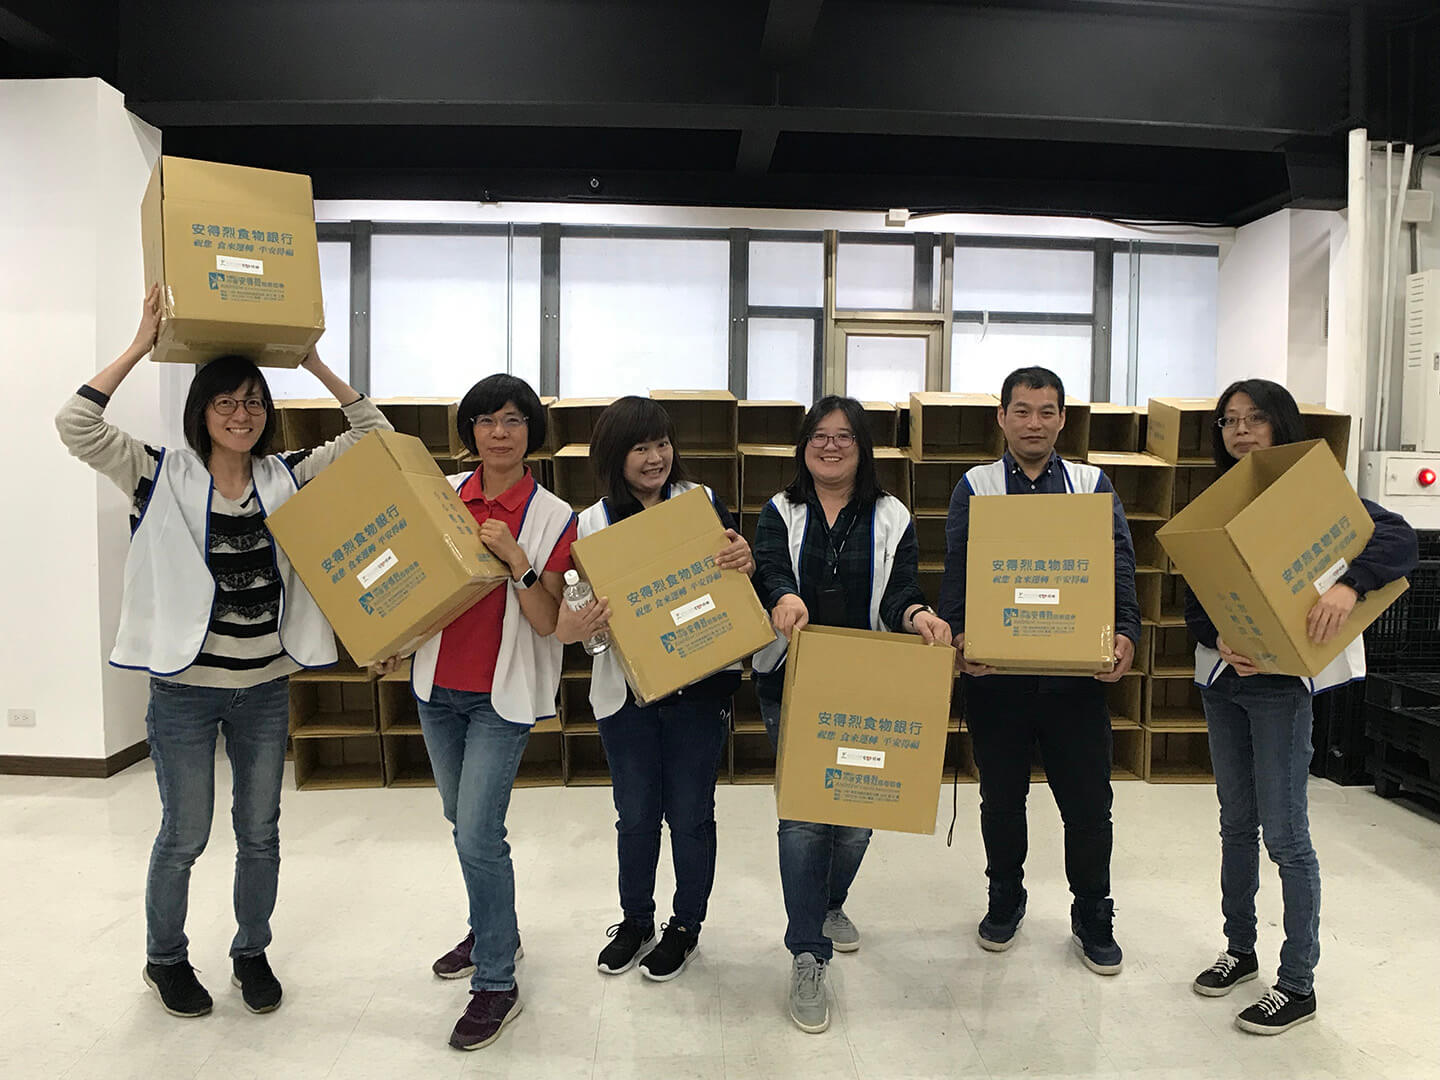 accton employee volunteering activity packing food boxes